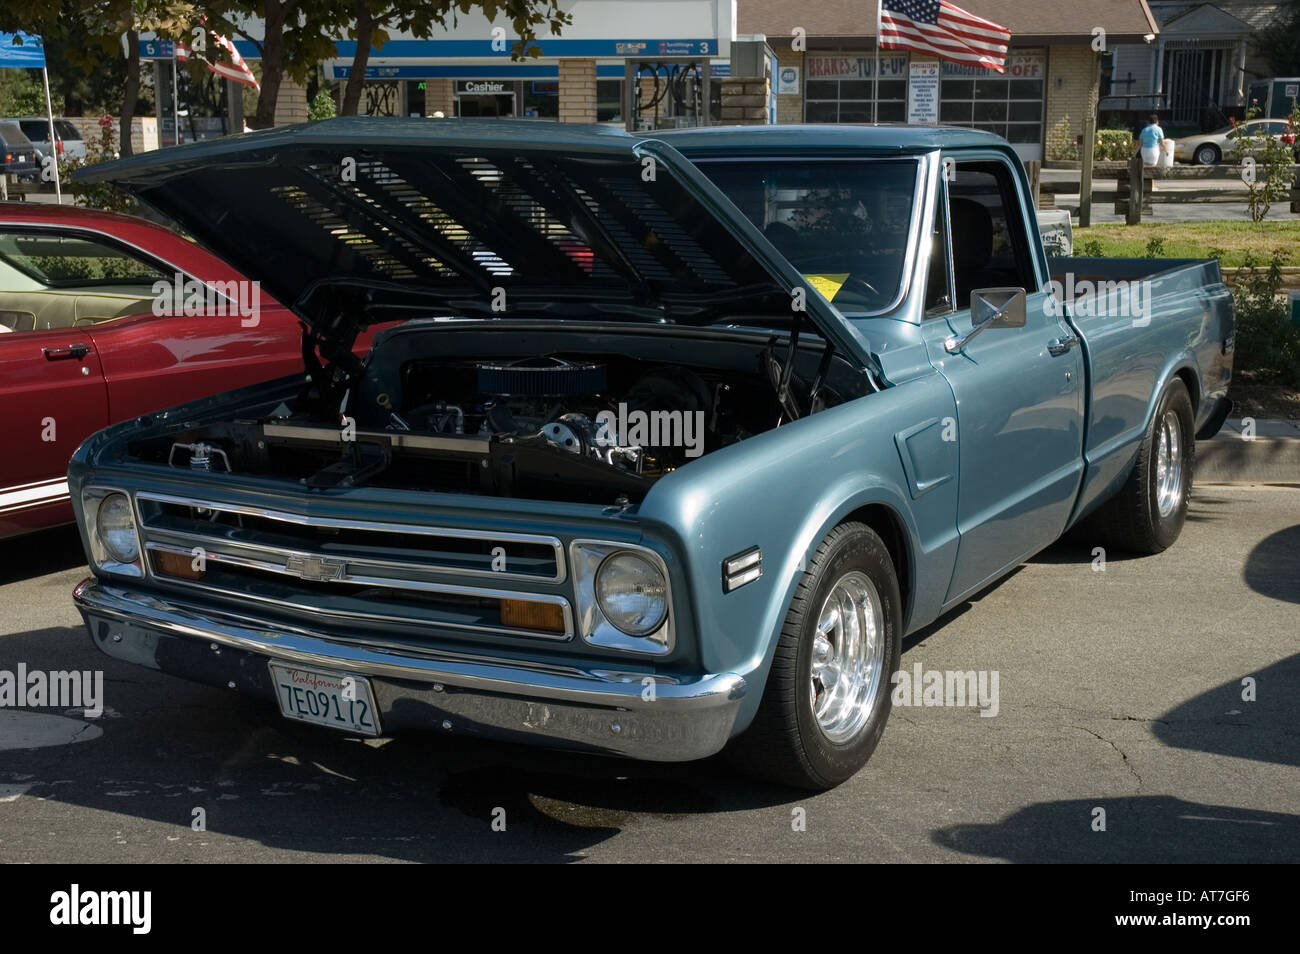 Los angeles california car show antique customized chevrolet chevy pickup pick up truck open hood engine light blue